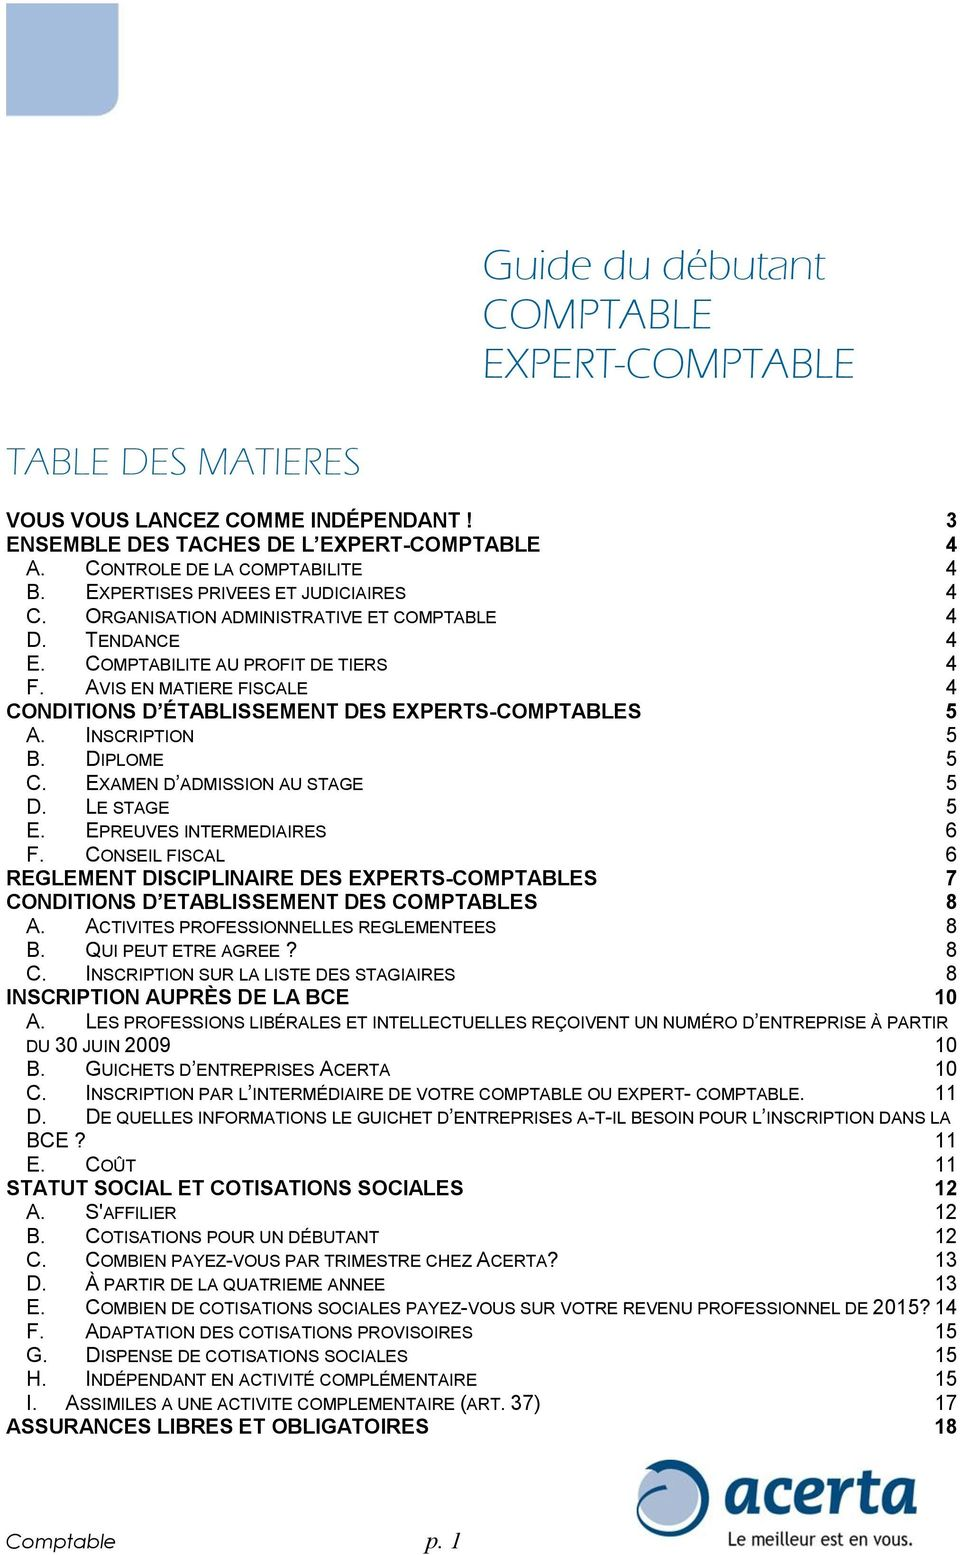 AVIS EN MATIERE FISCALE 4 CONDITIONS D ÉTABLISSEMENT DES EXPERTS-COMPTABLES 5 A. INSCRIPTION 5 B. DIPLOME 5 C. EXAMEN D ADMISSION AU STAGE 5 D. LE STAGE 5 E. EPREUVES INTERMEDIAIRES 6 F.